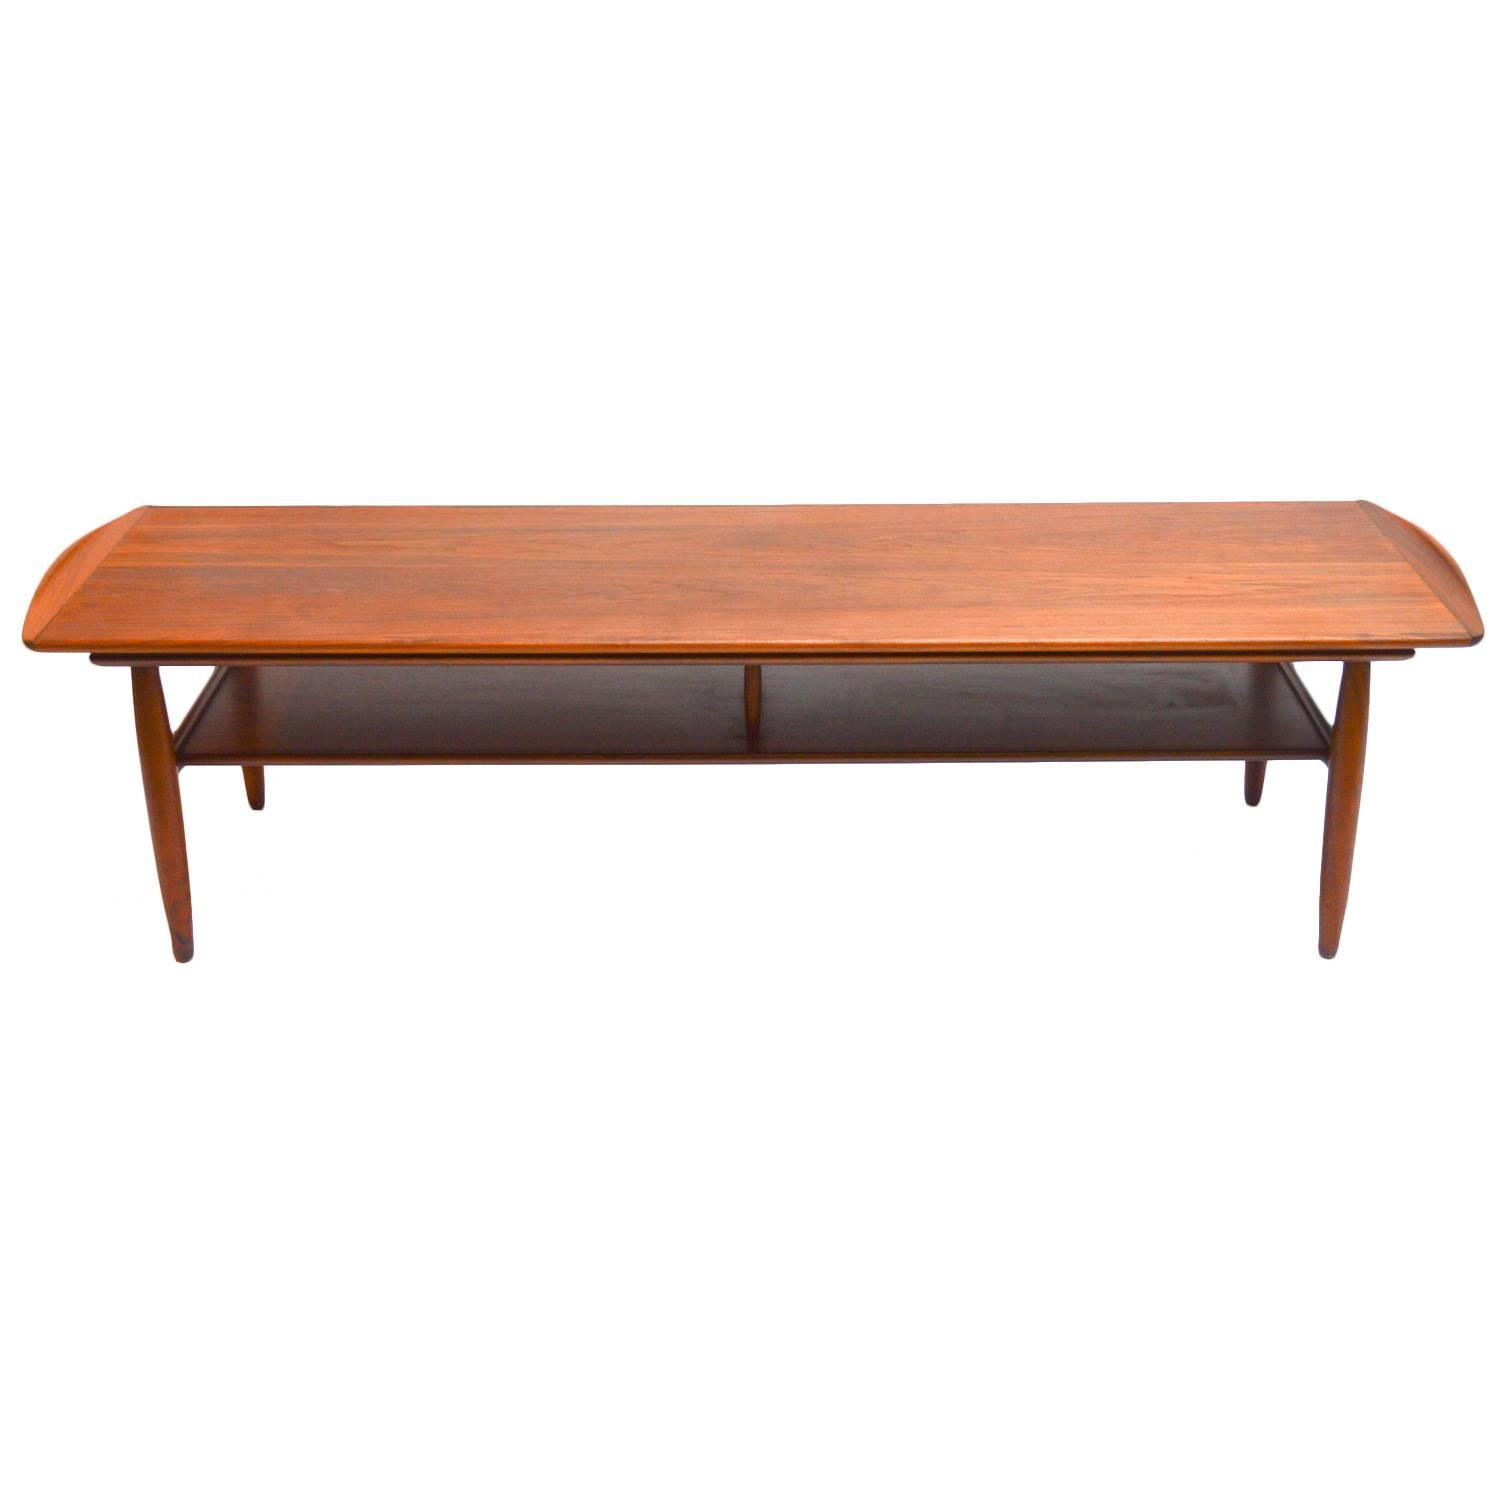 Mid century modern two tiered walnut coffee table at 1stdibs Mid century coffee tables